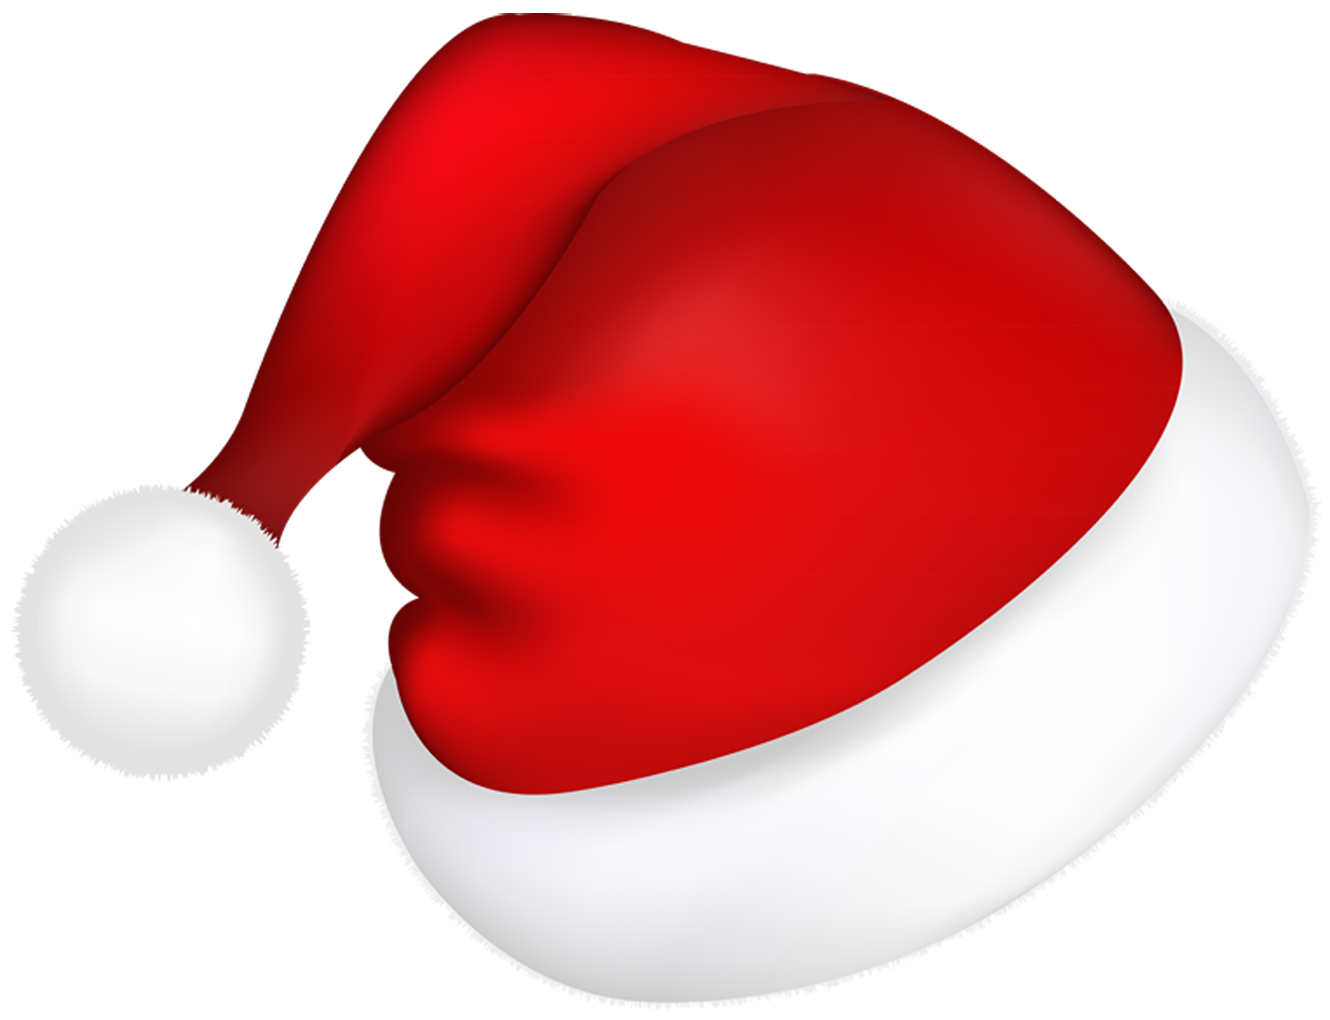 clipart christmas hat - photo #29